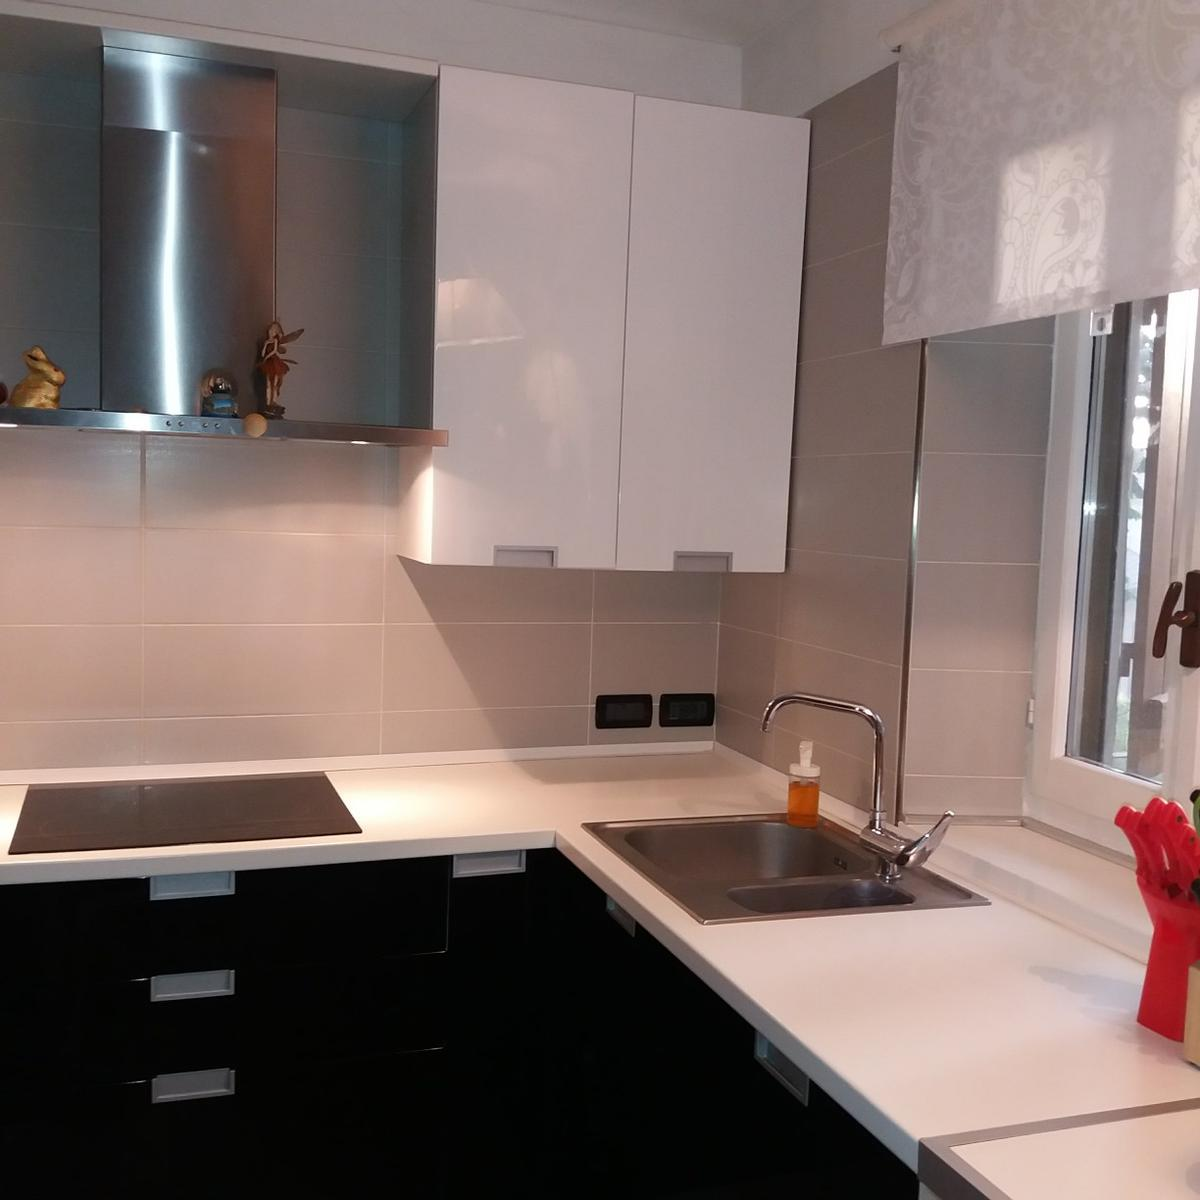 Cucina moderna in 10023 Chieri for €800.00 for sale - Shpock